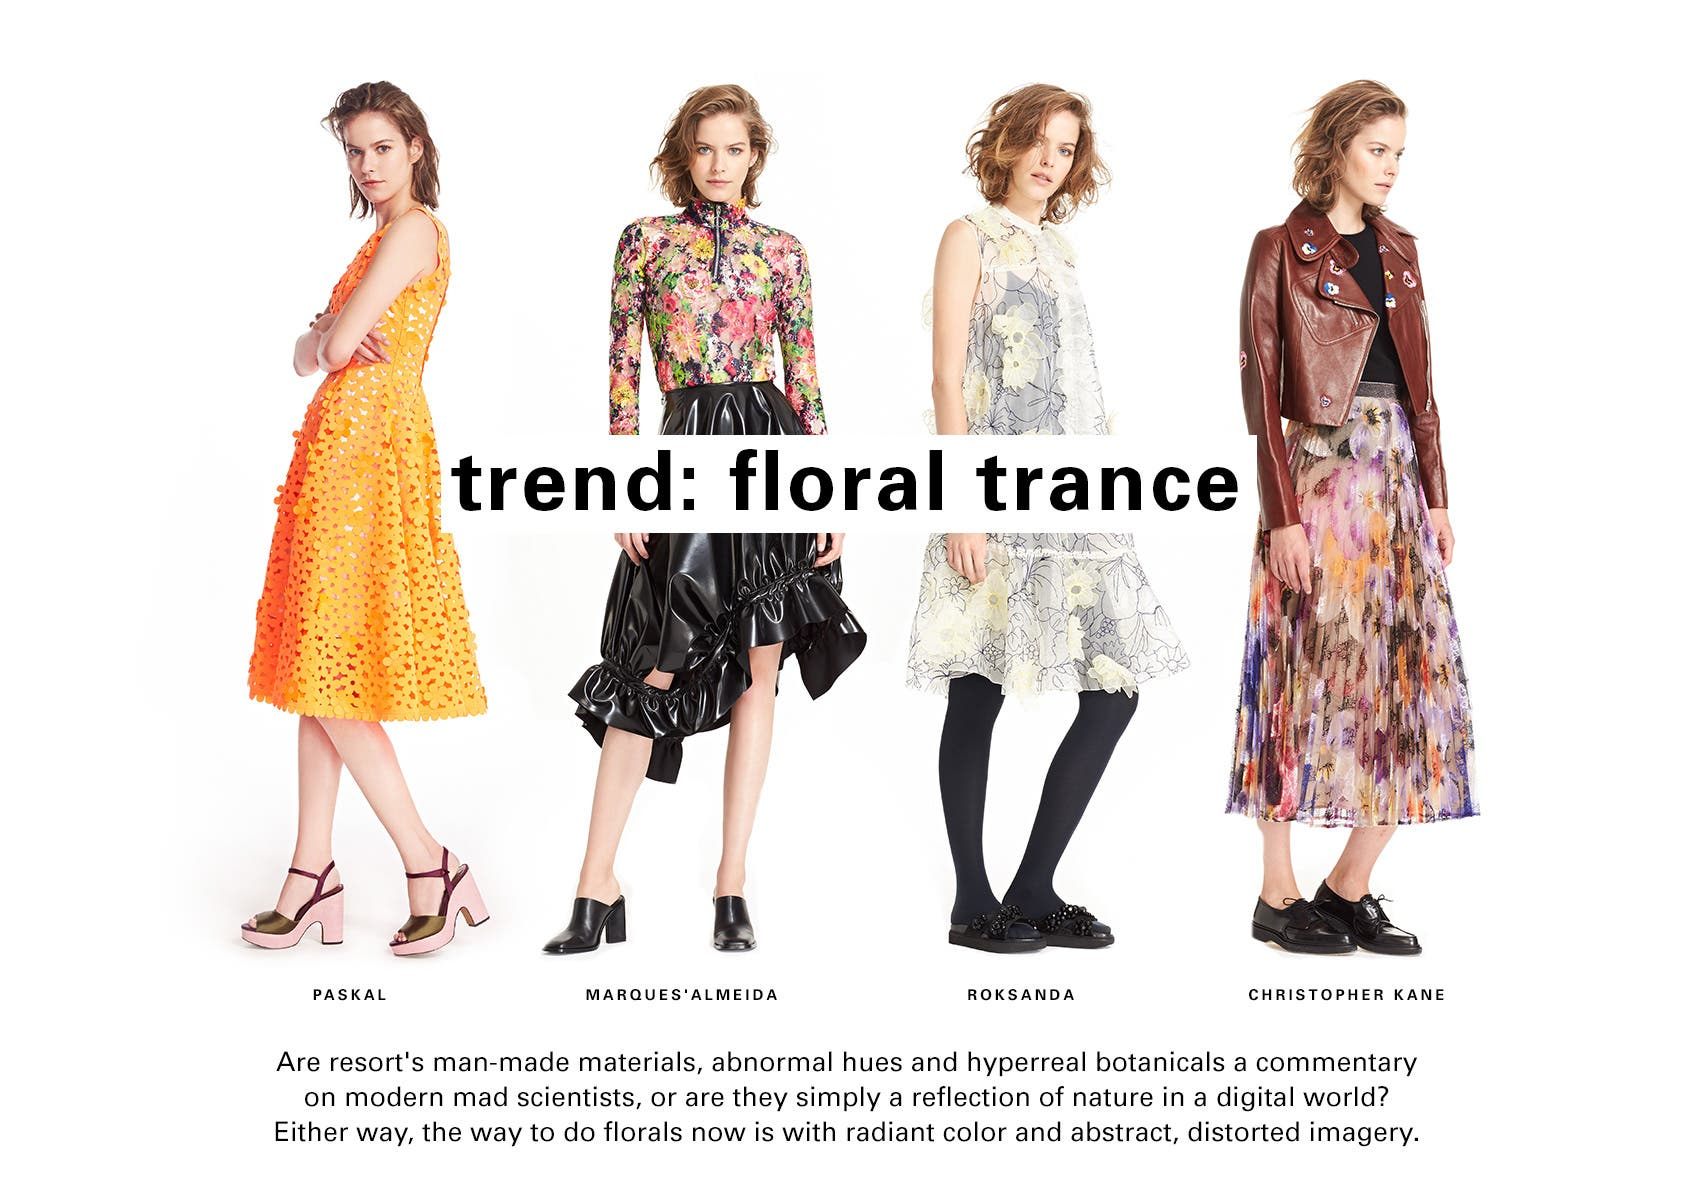 SPACE trend: floral trance. Hyperreal botanicals, radiant color and abstract, distorted imagery combines for one of our favorite resort season trends.